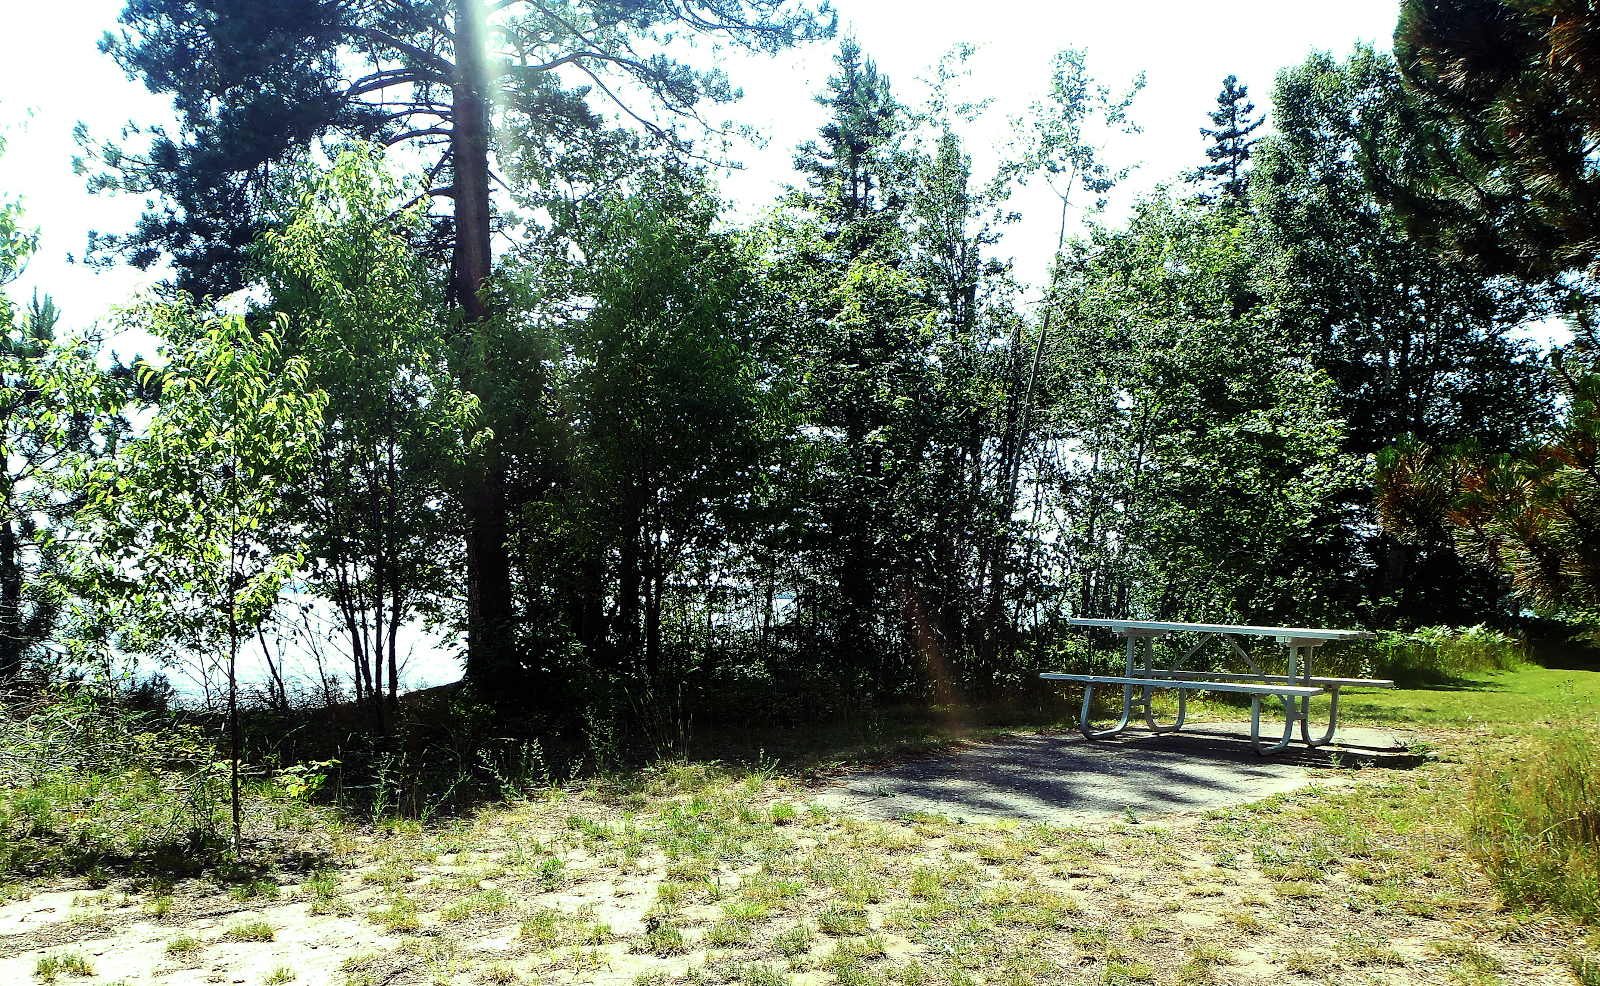 The temperature difference is notable between the picnic area atop the dunes and the beach at Batchawana Bay Provincial Park.